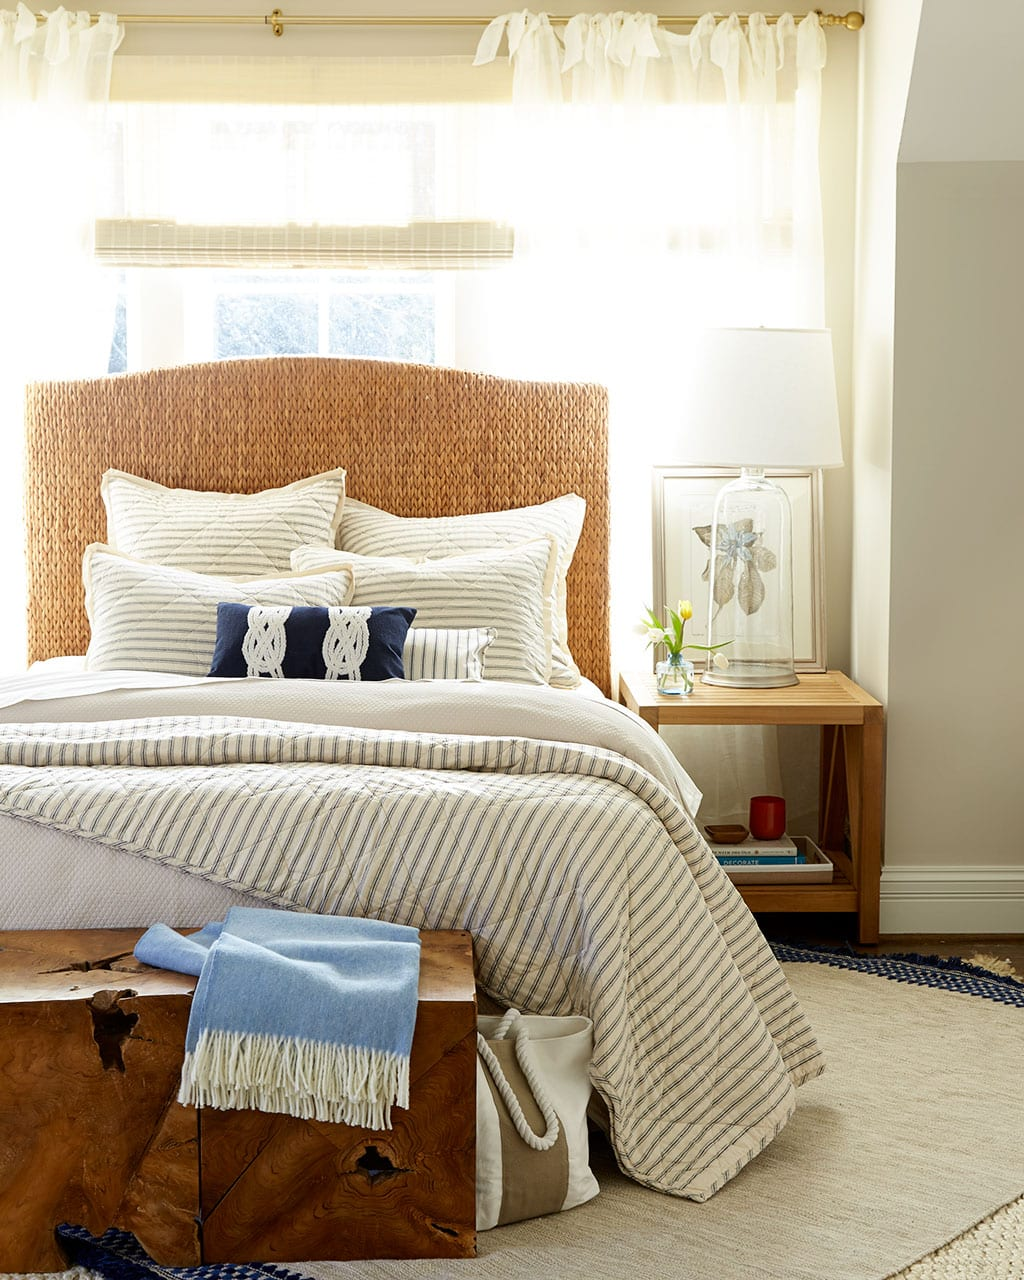 Headboards In Front Of Windows 10 Ways To Place Your Bed In Front Of A Window How To Decorate